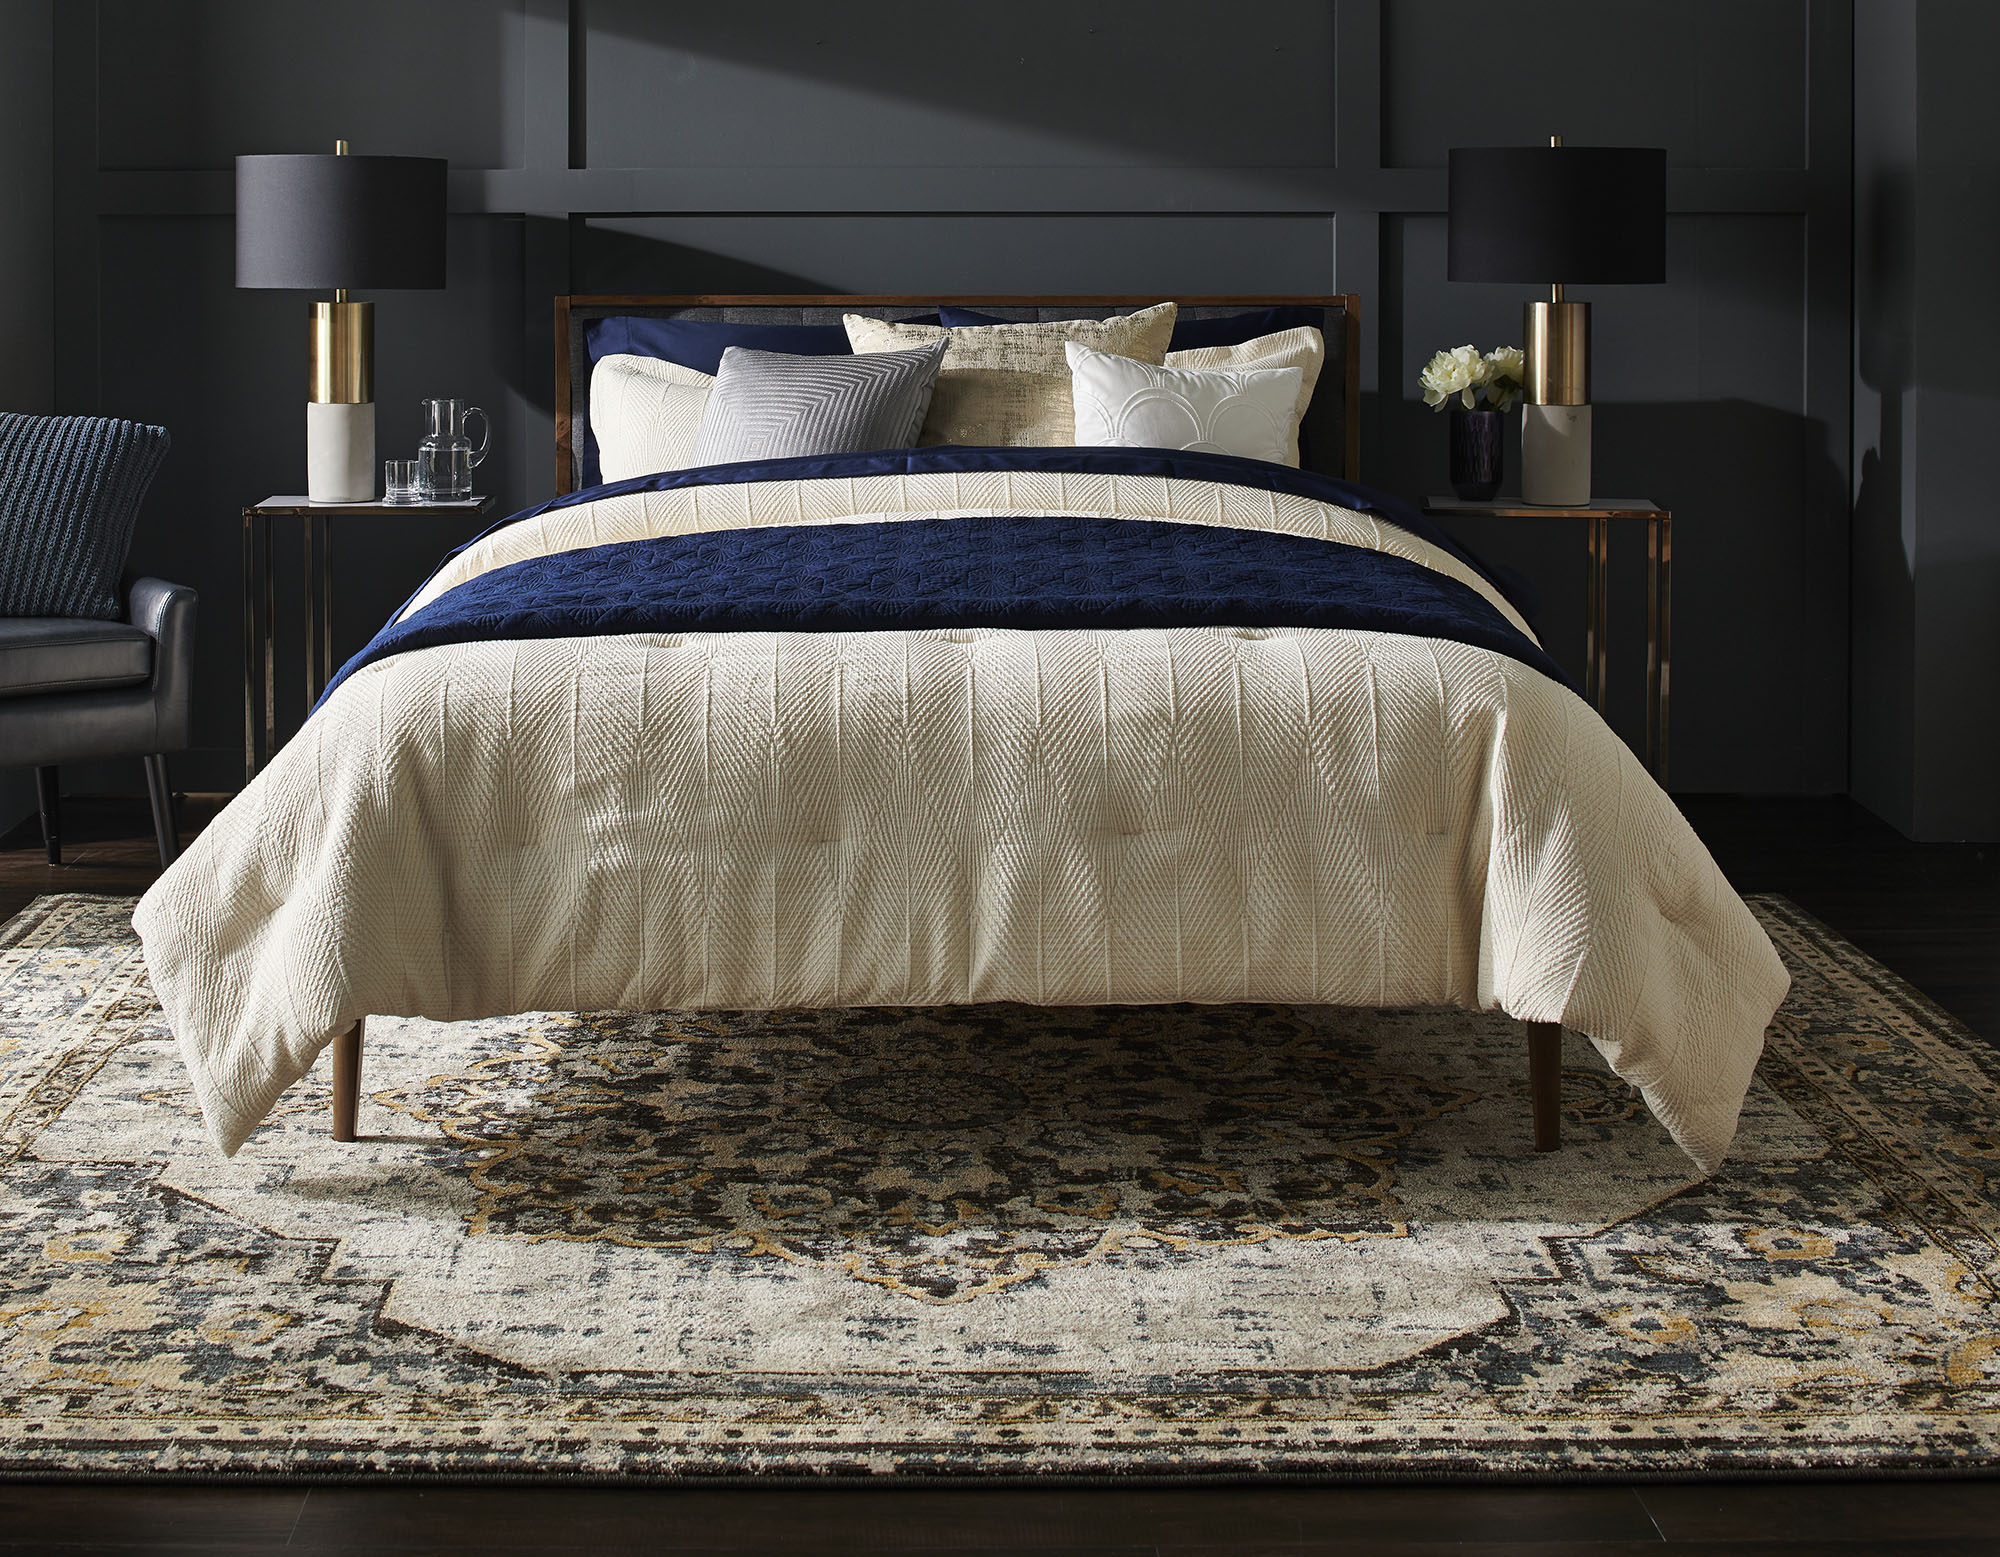 bedroom with bed, rug, and dark walls